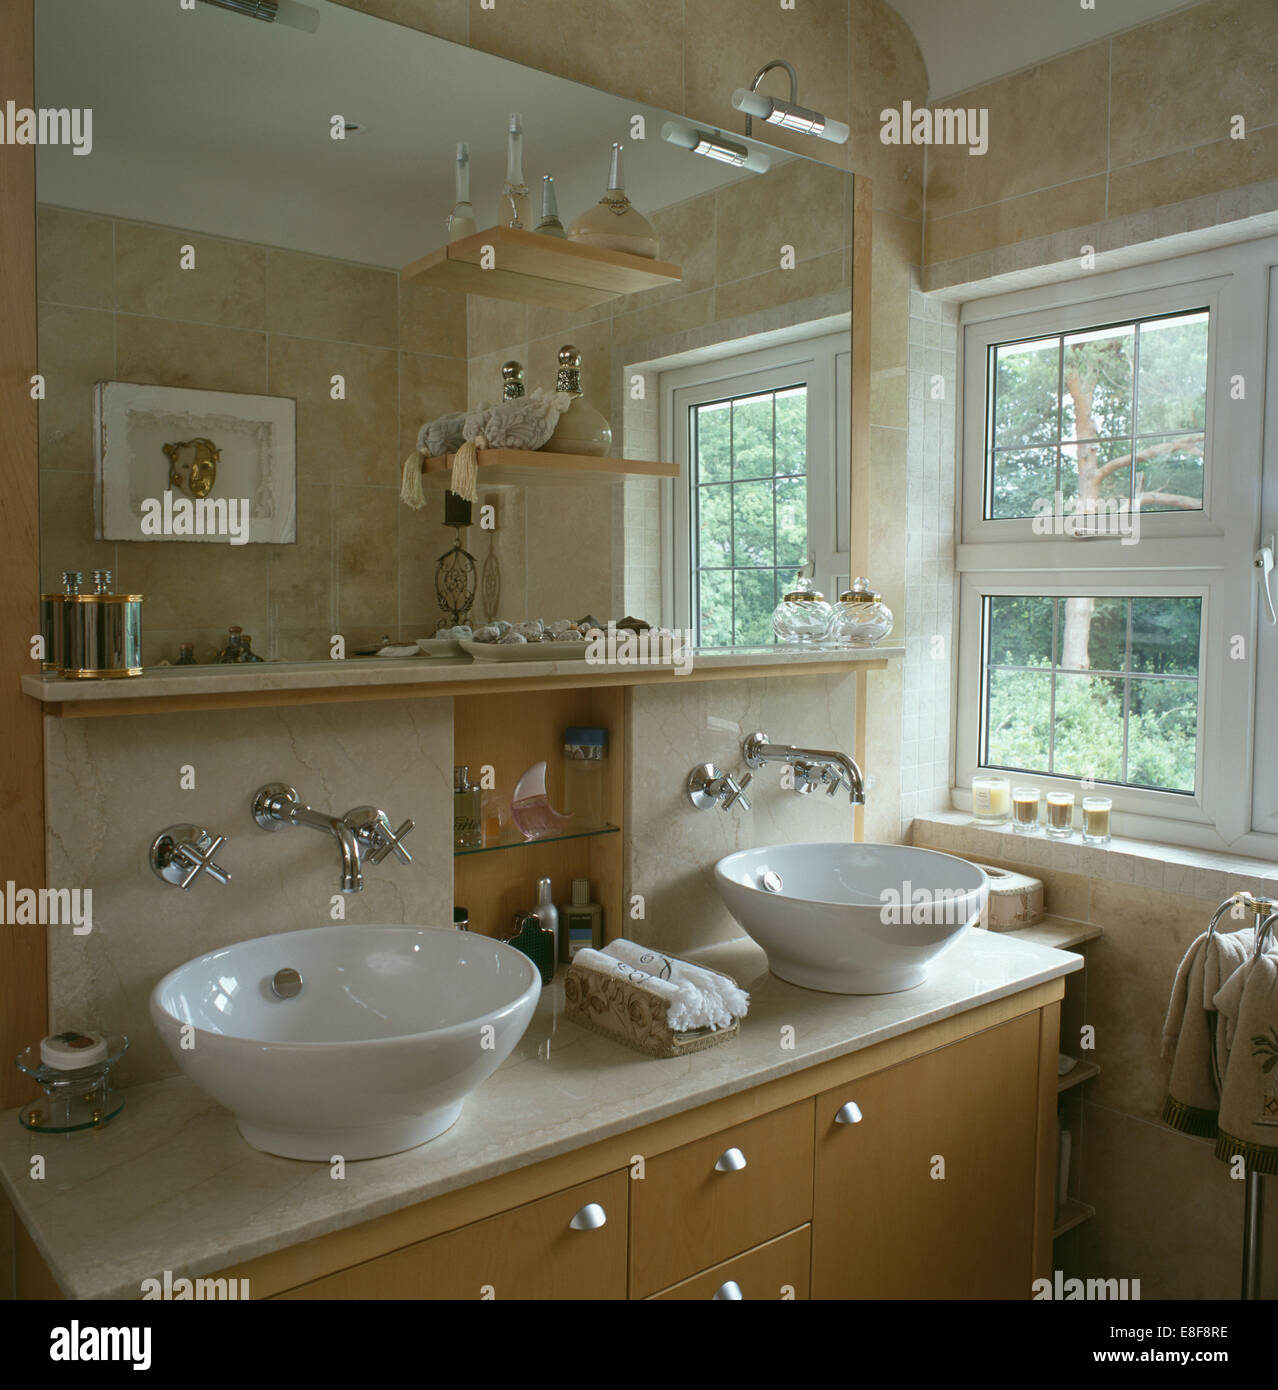 Double Bowl Basins On Vanity Unit Below Mirror And Shelf In Country Bathroom